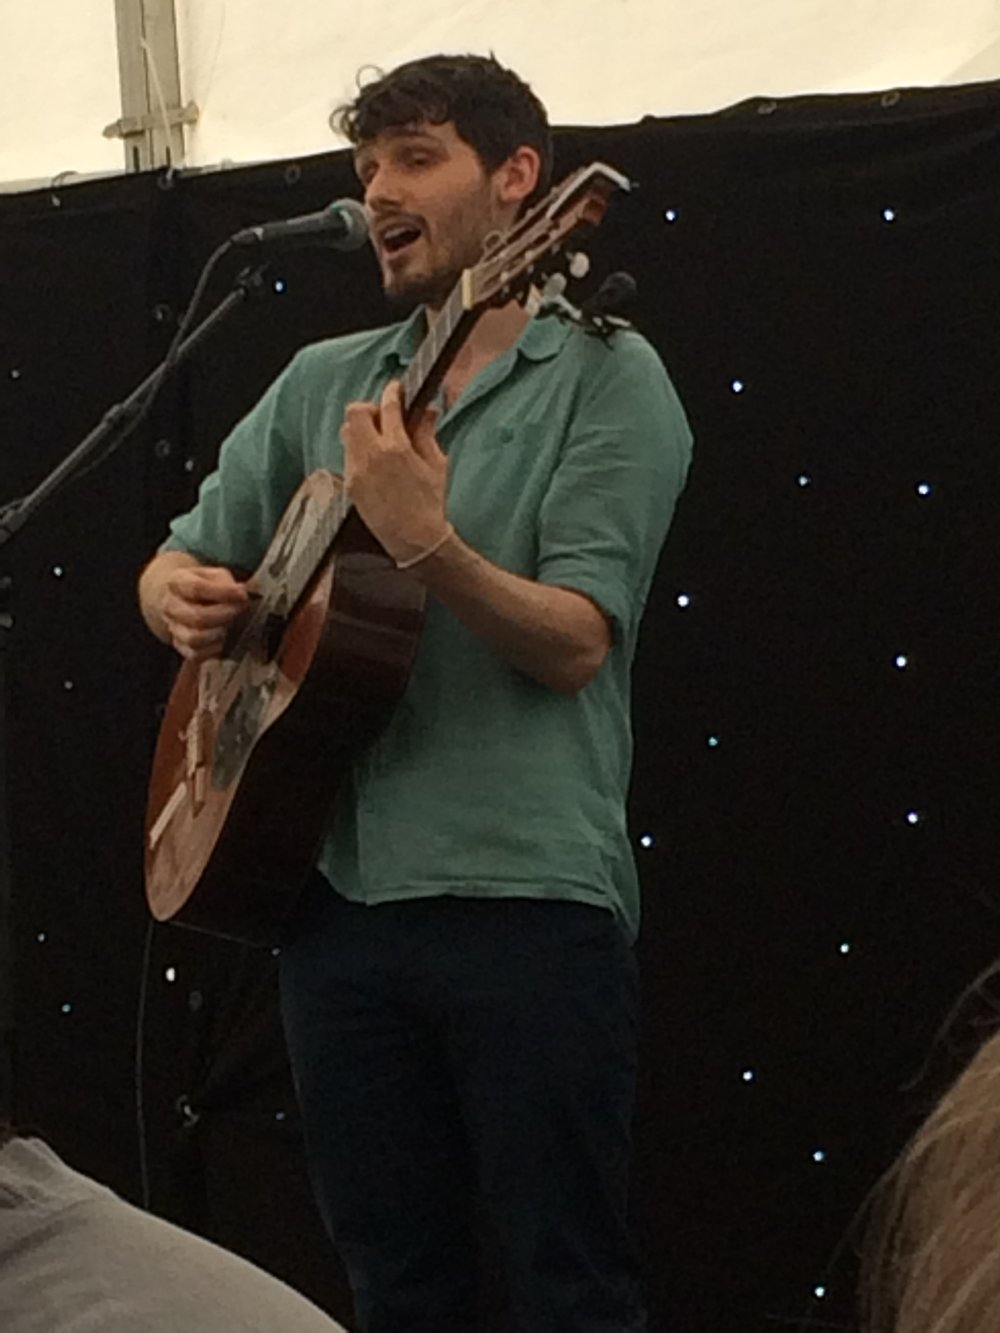 Dom Prag at Rickmansworth Waterways Festival 2018